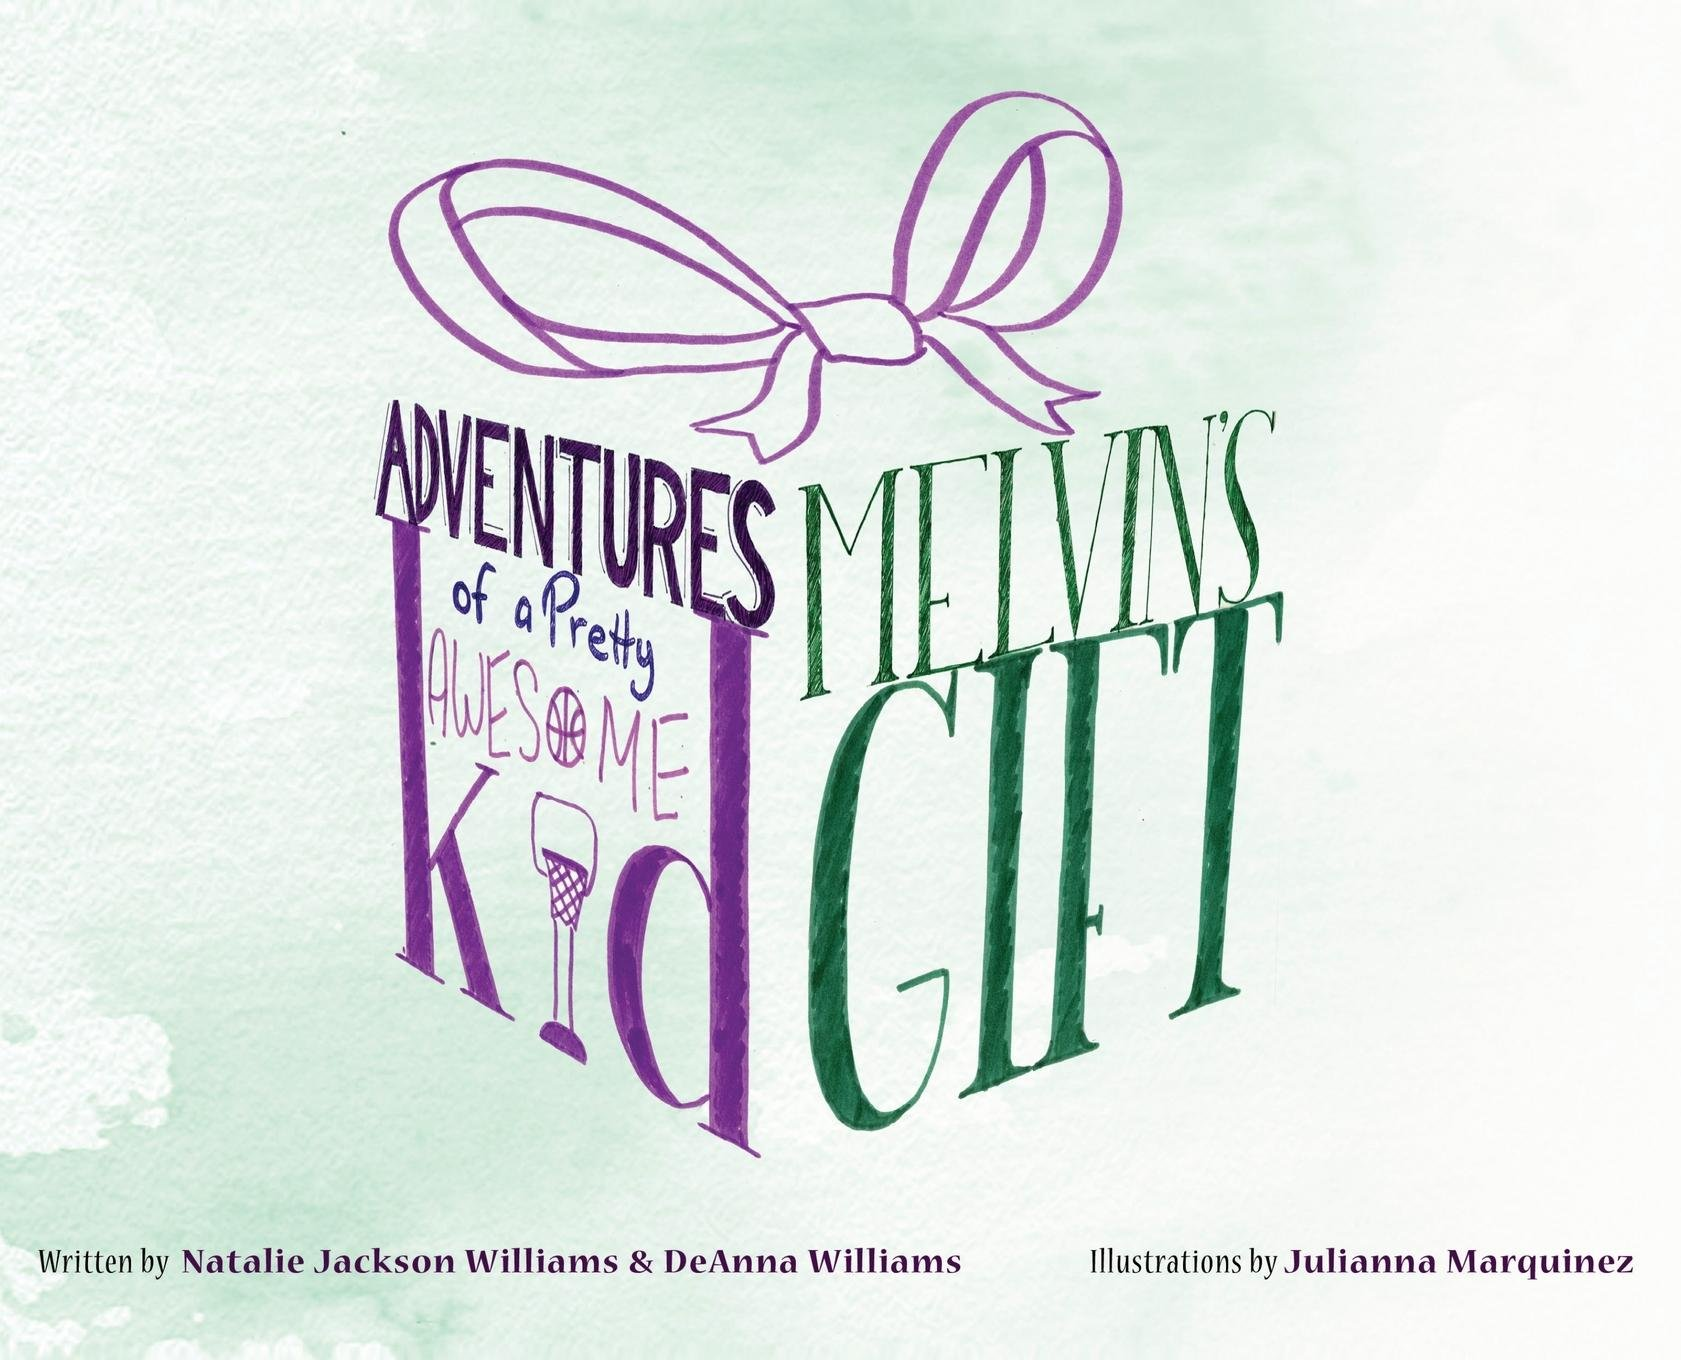 The Adventures of a Pretty Awesome Kid: Melvins Gift by Evergreen Press LLC